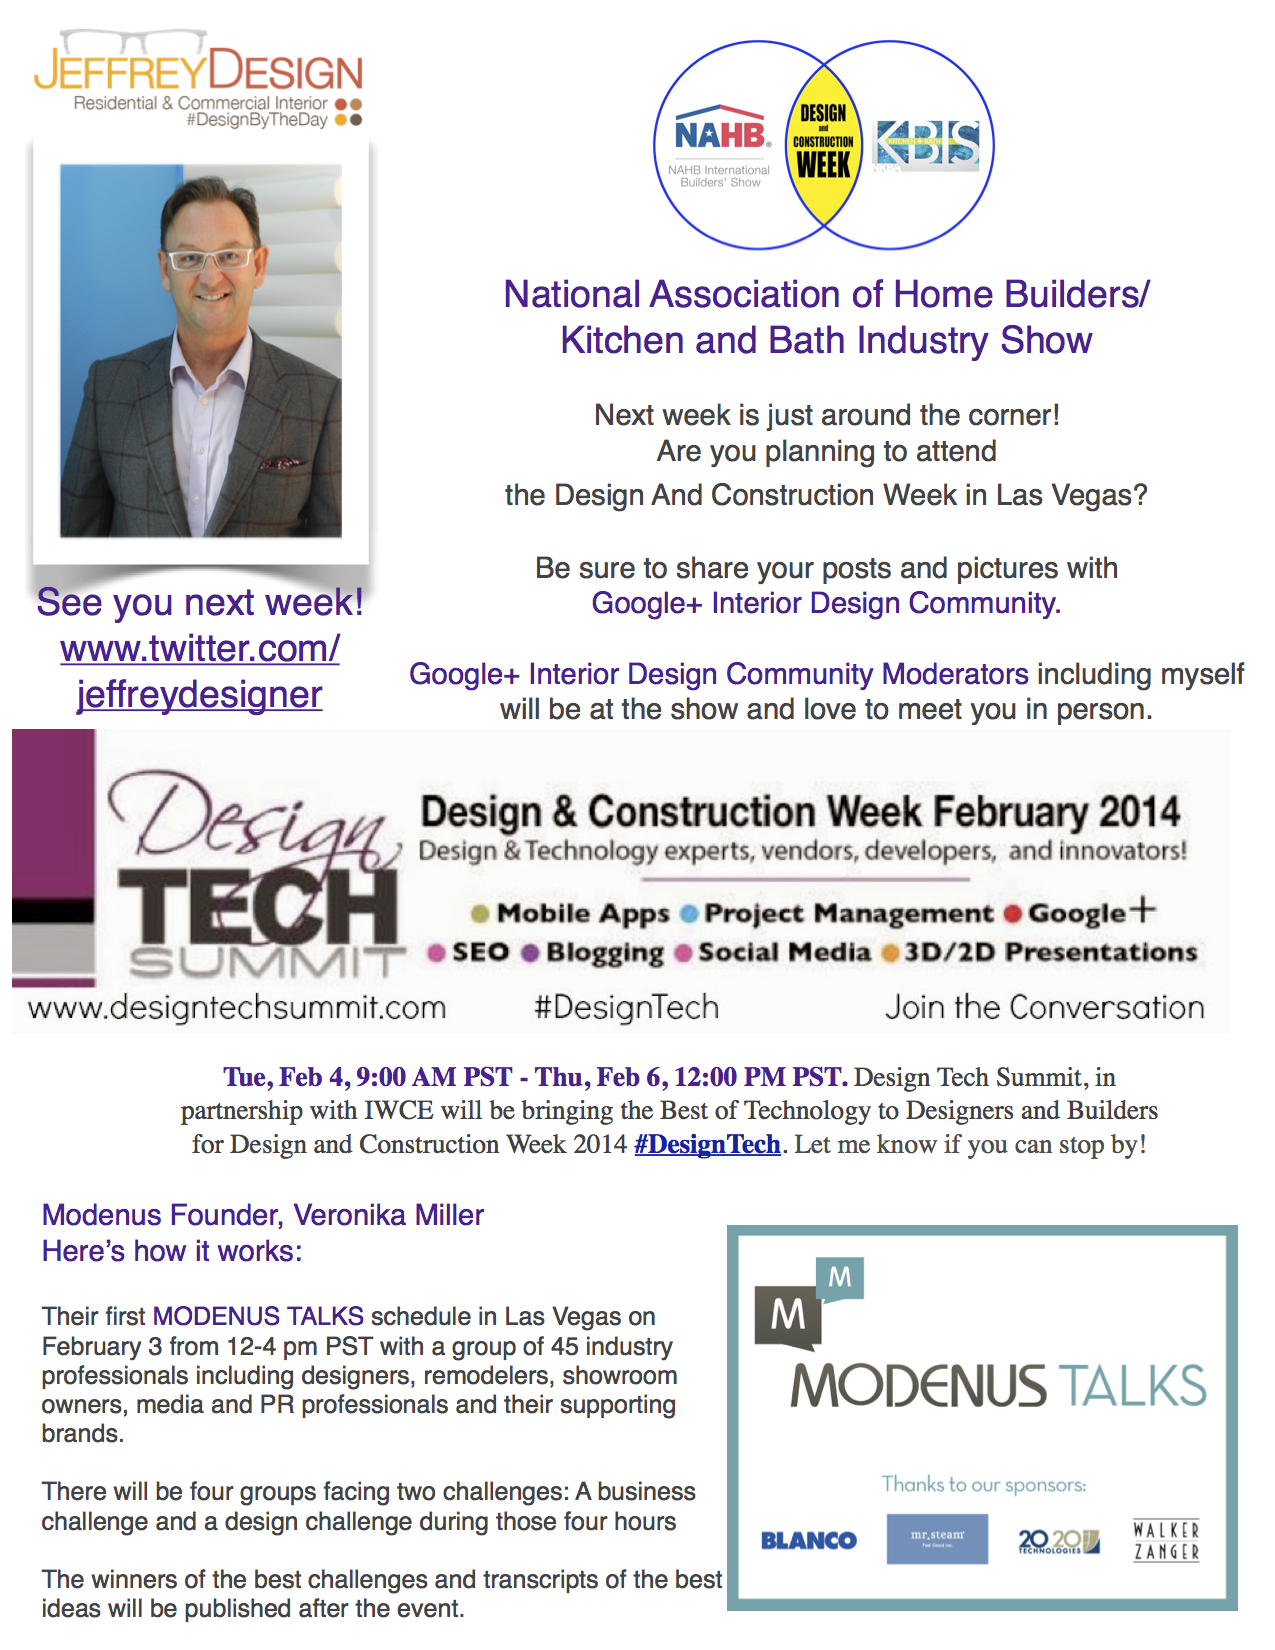 National Association of Home Builders/Kitchen and Bath Industry Show ...